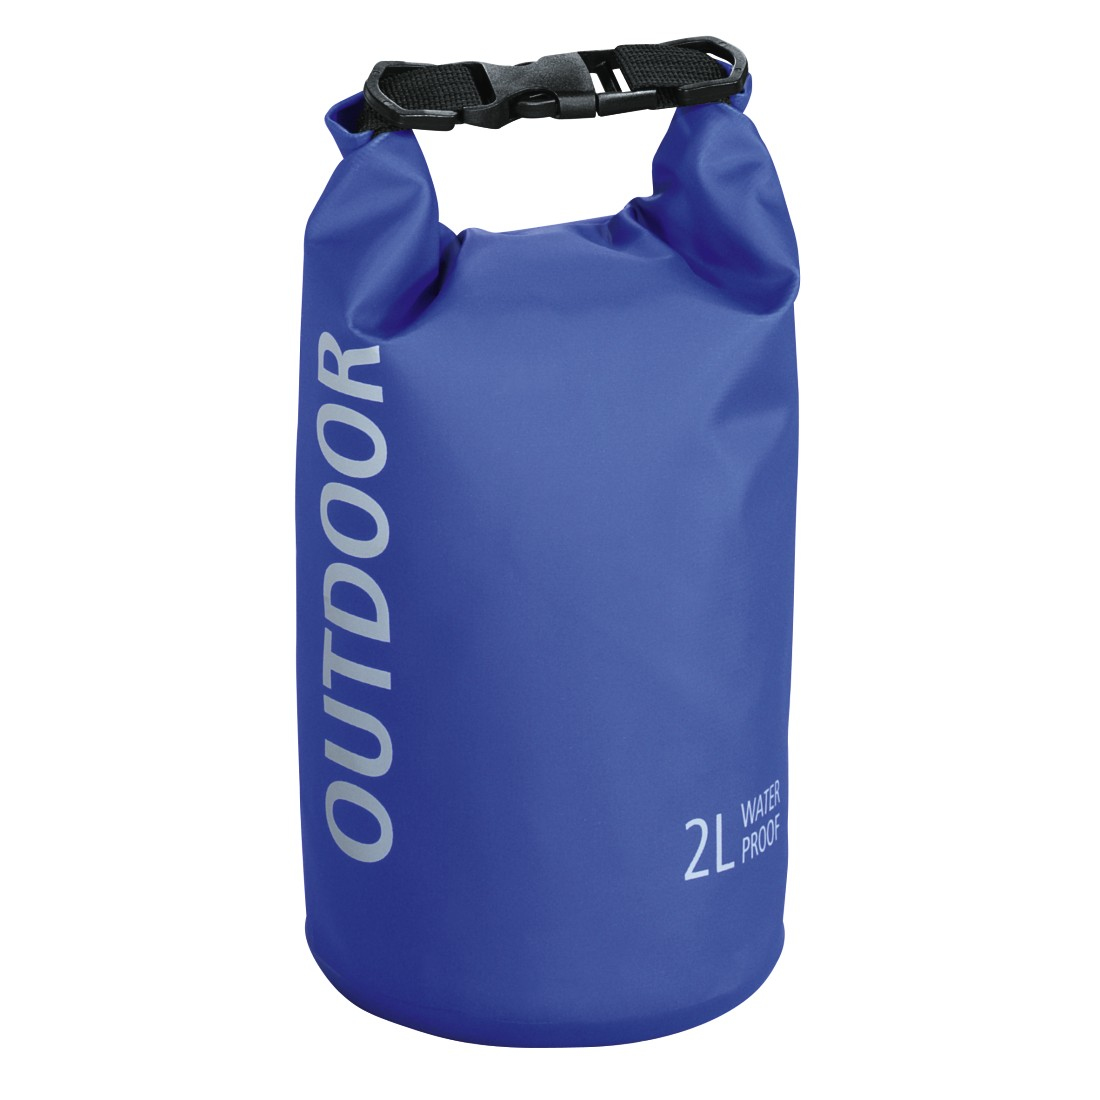 Hama Outdoor Bag   2l blue